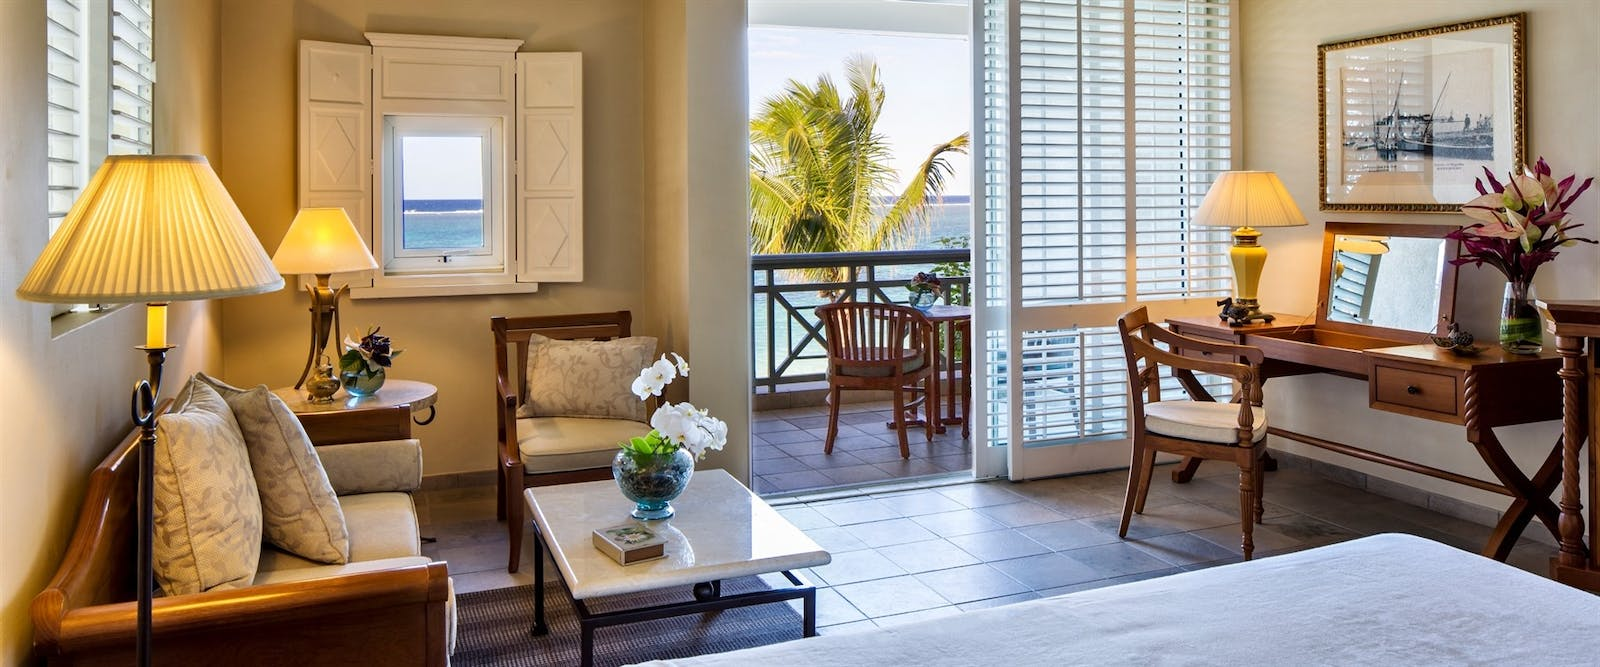 Colonial Ocean Front Room at The Residence Mauritius, Indian Ocean